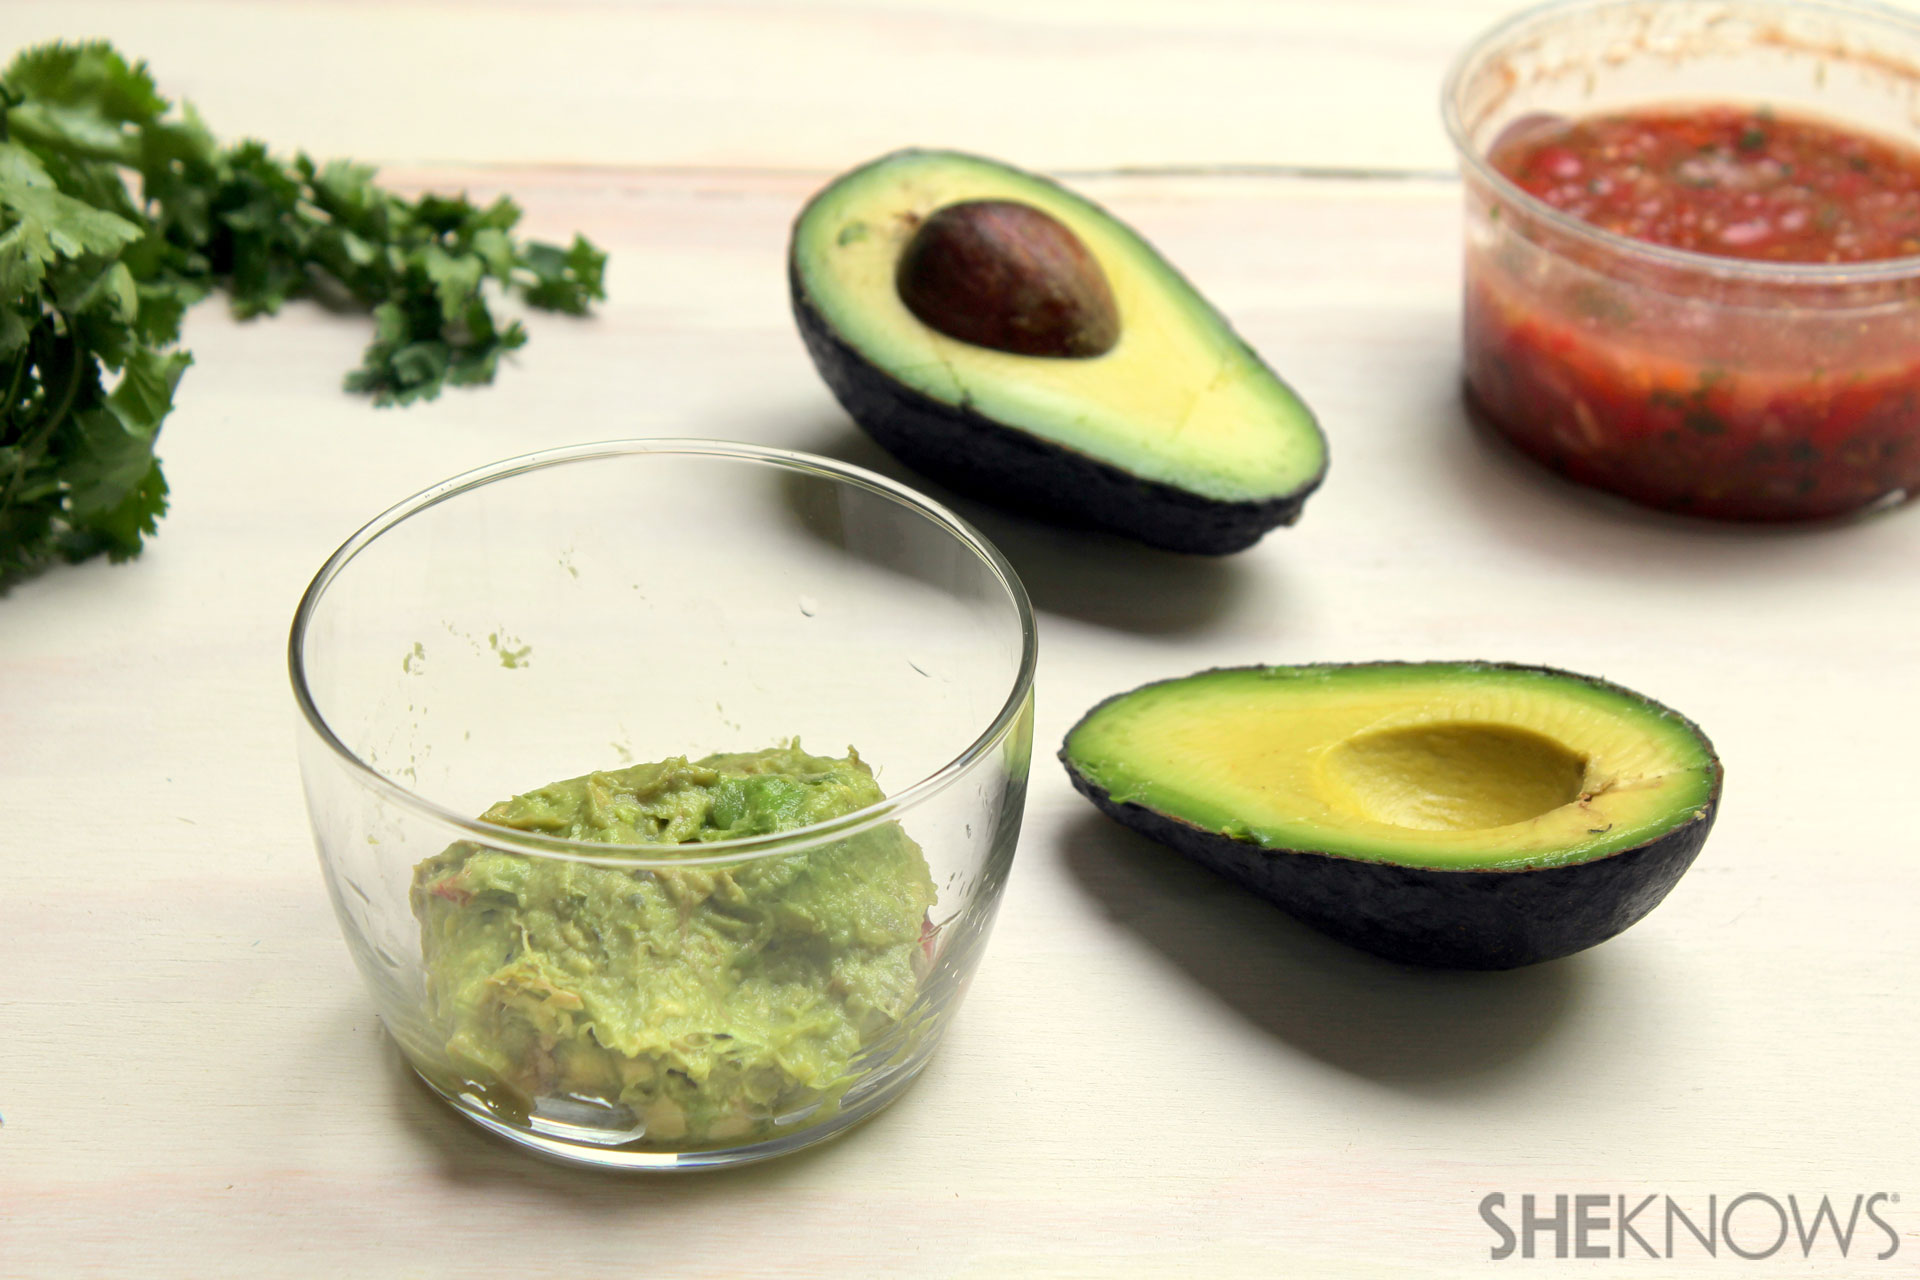 Finally a meal out of guacamole!